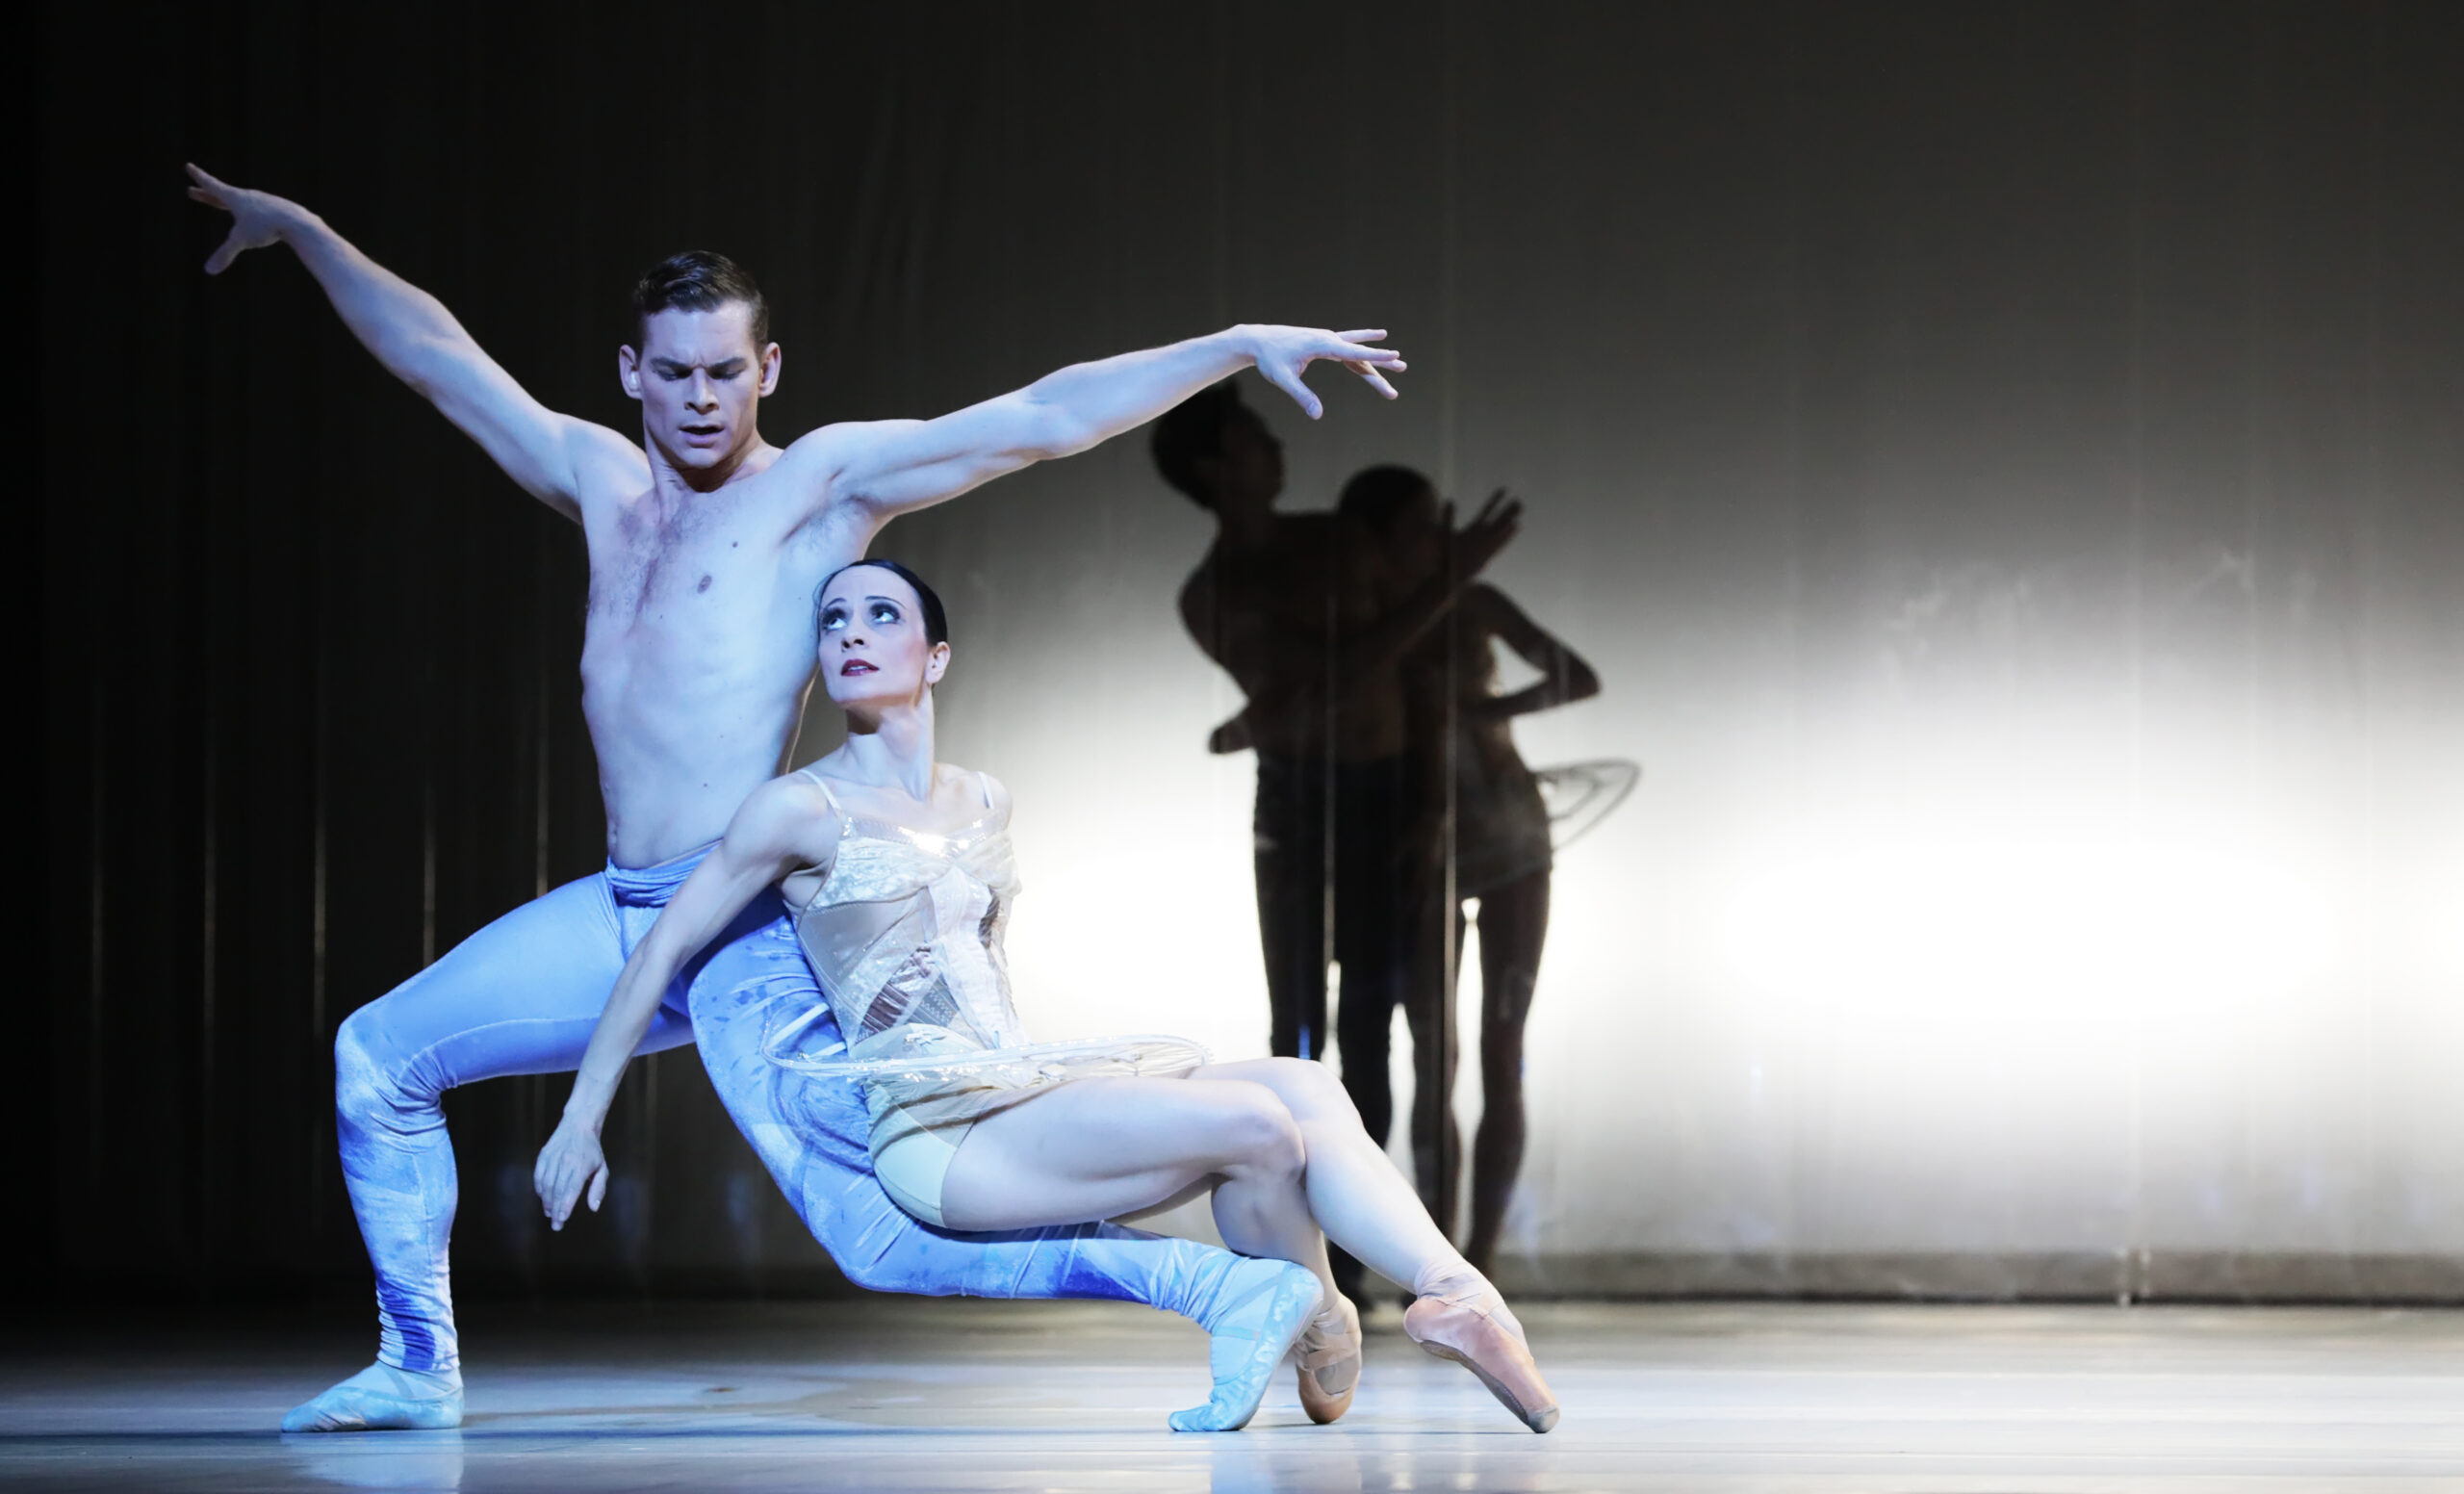 Male dancer wearing blue tights in a lunging position, with a female dancer in a nude-colored leotard and clear tutu resting against his supporting leg.